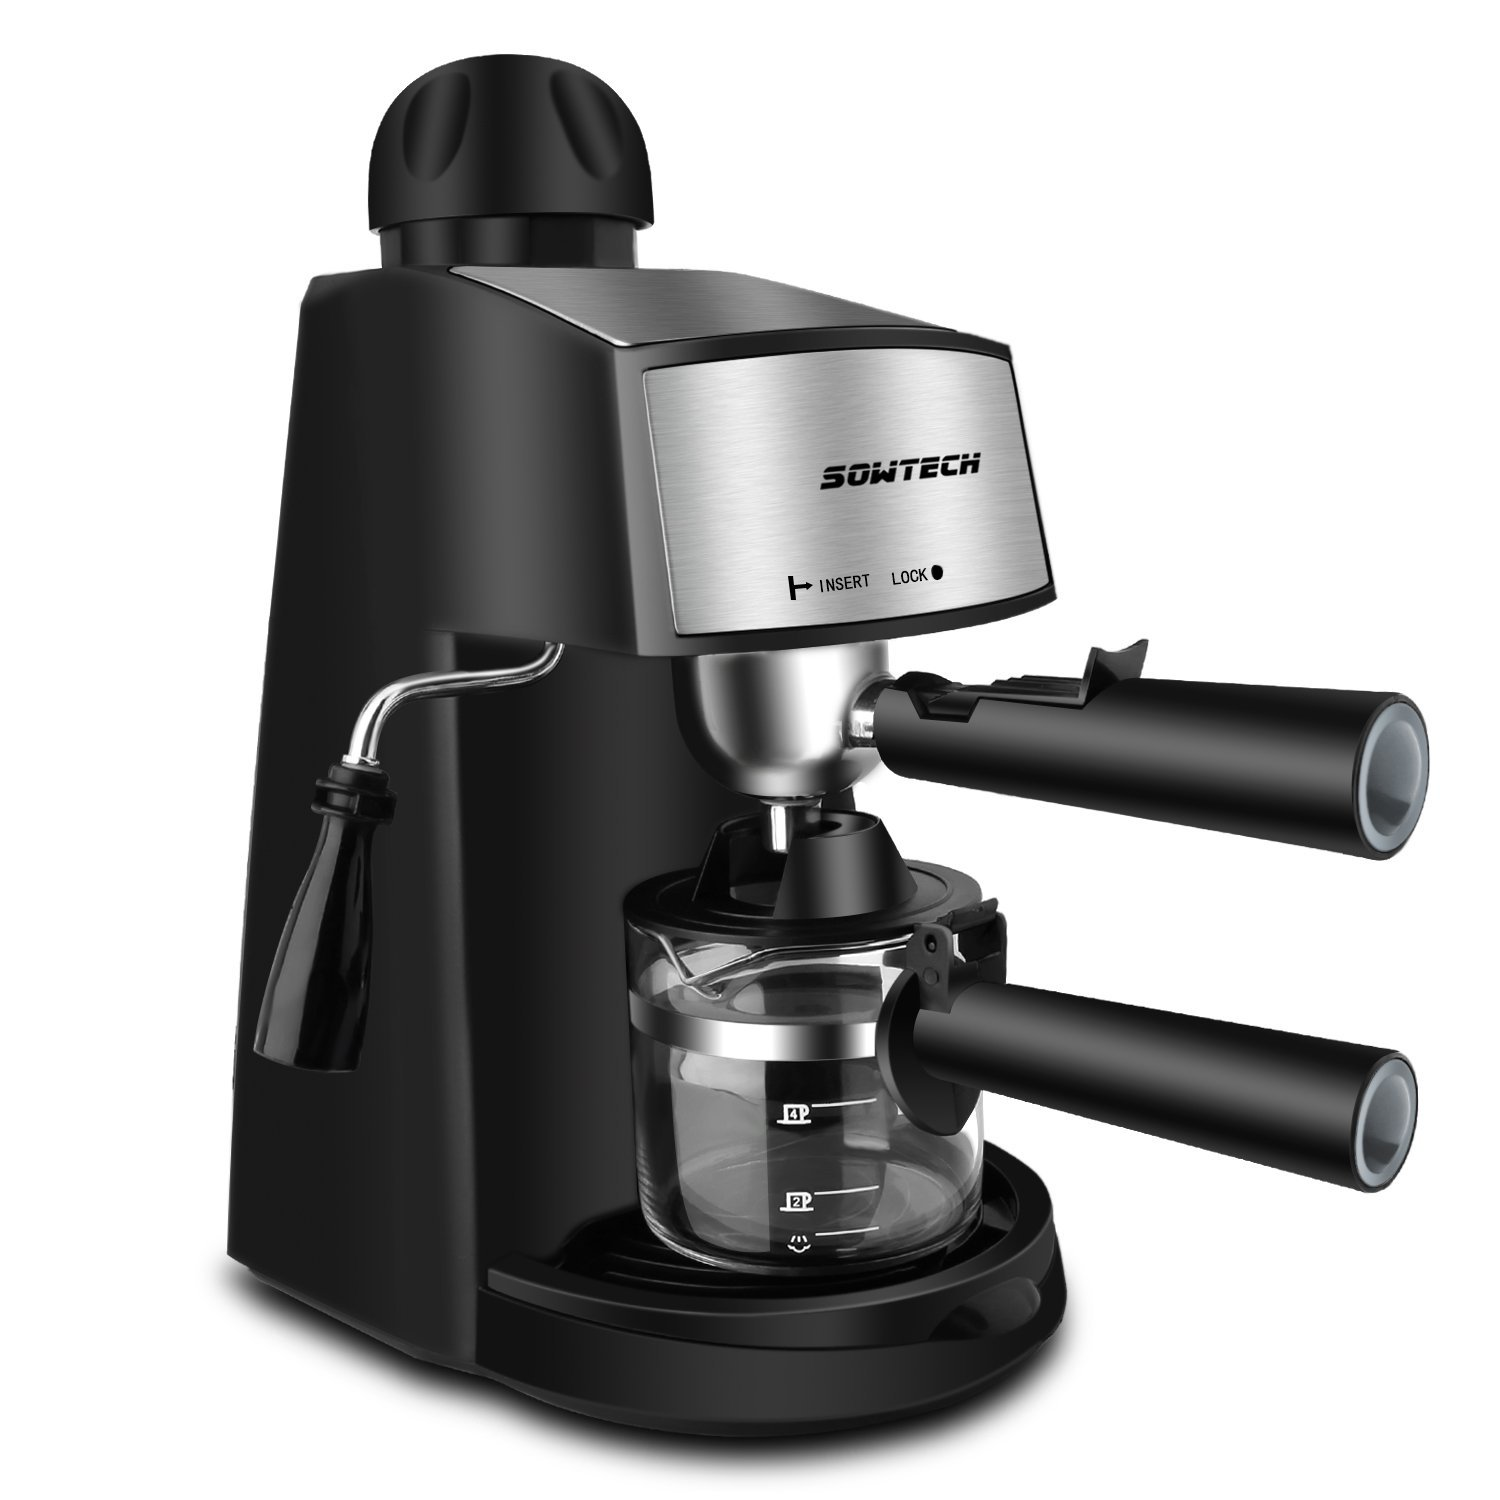 SOWTECH 3.5 Bar Steam Espresso Machine with 800W Coffee Maker for 2Oz Mocha Latte and Cappuccino - Black